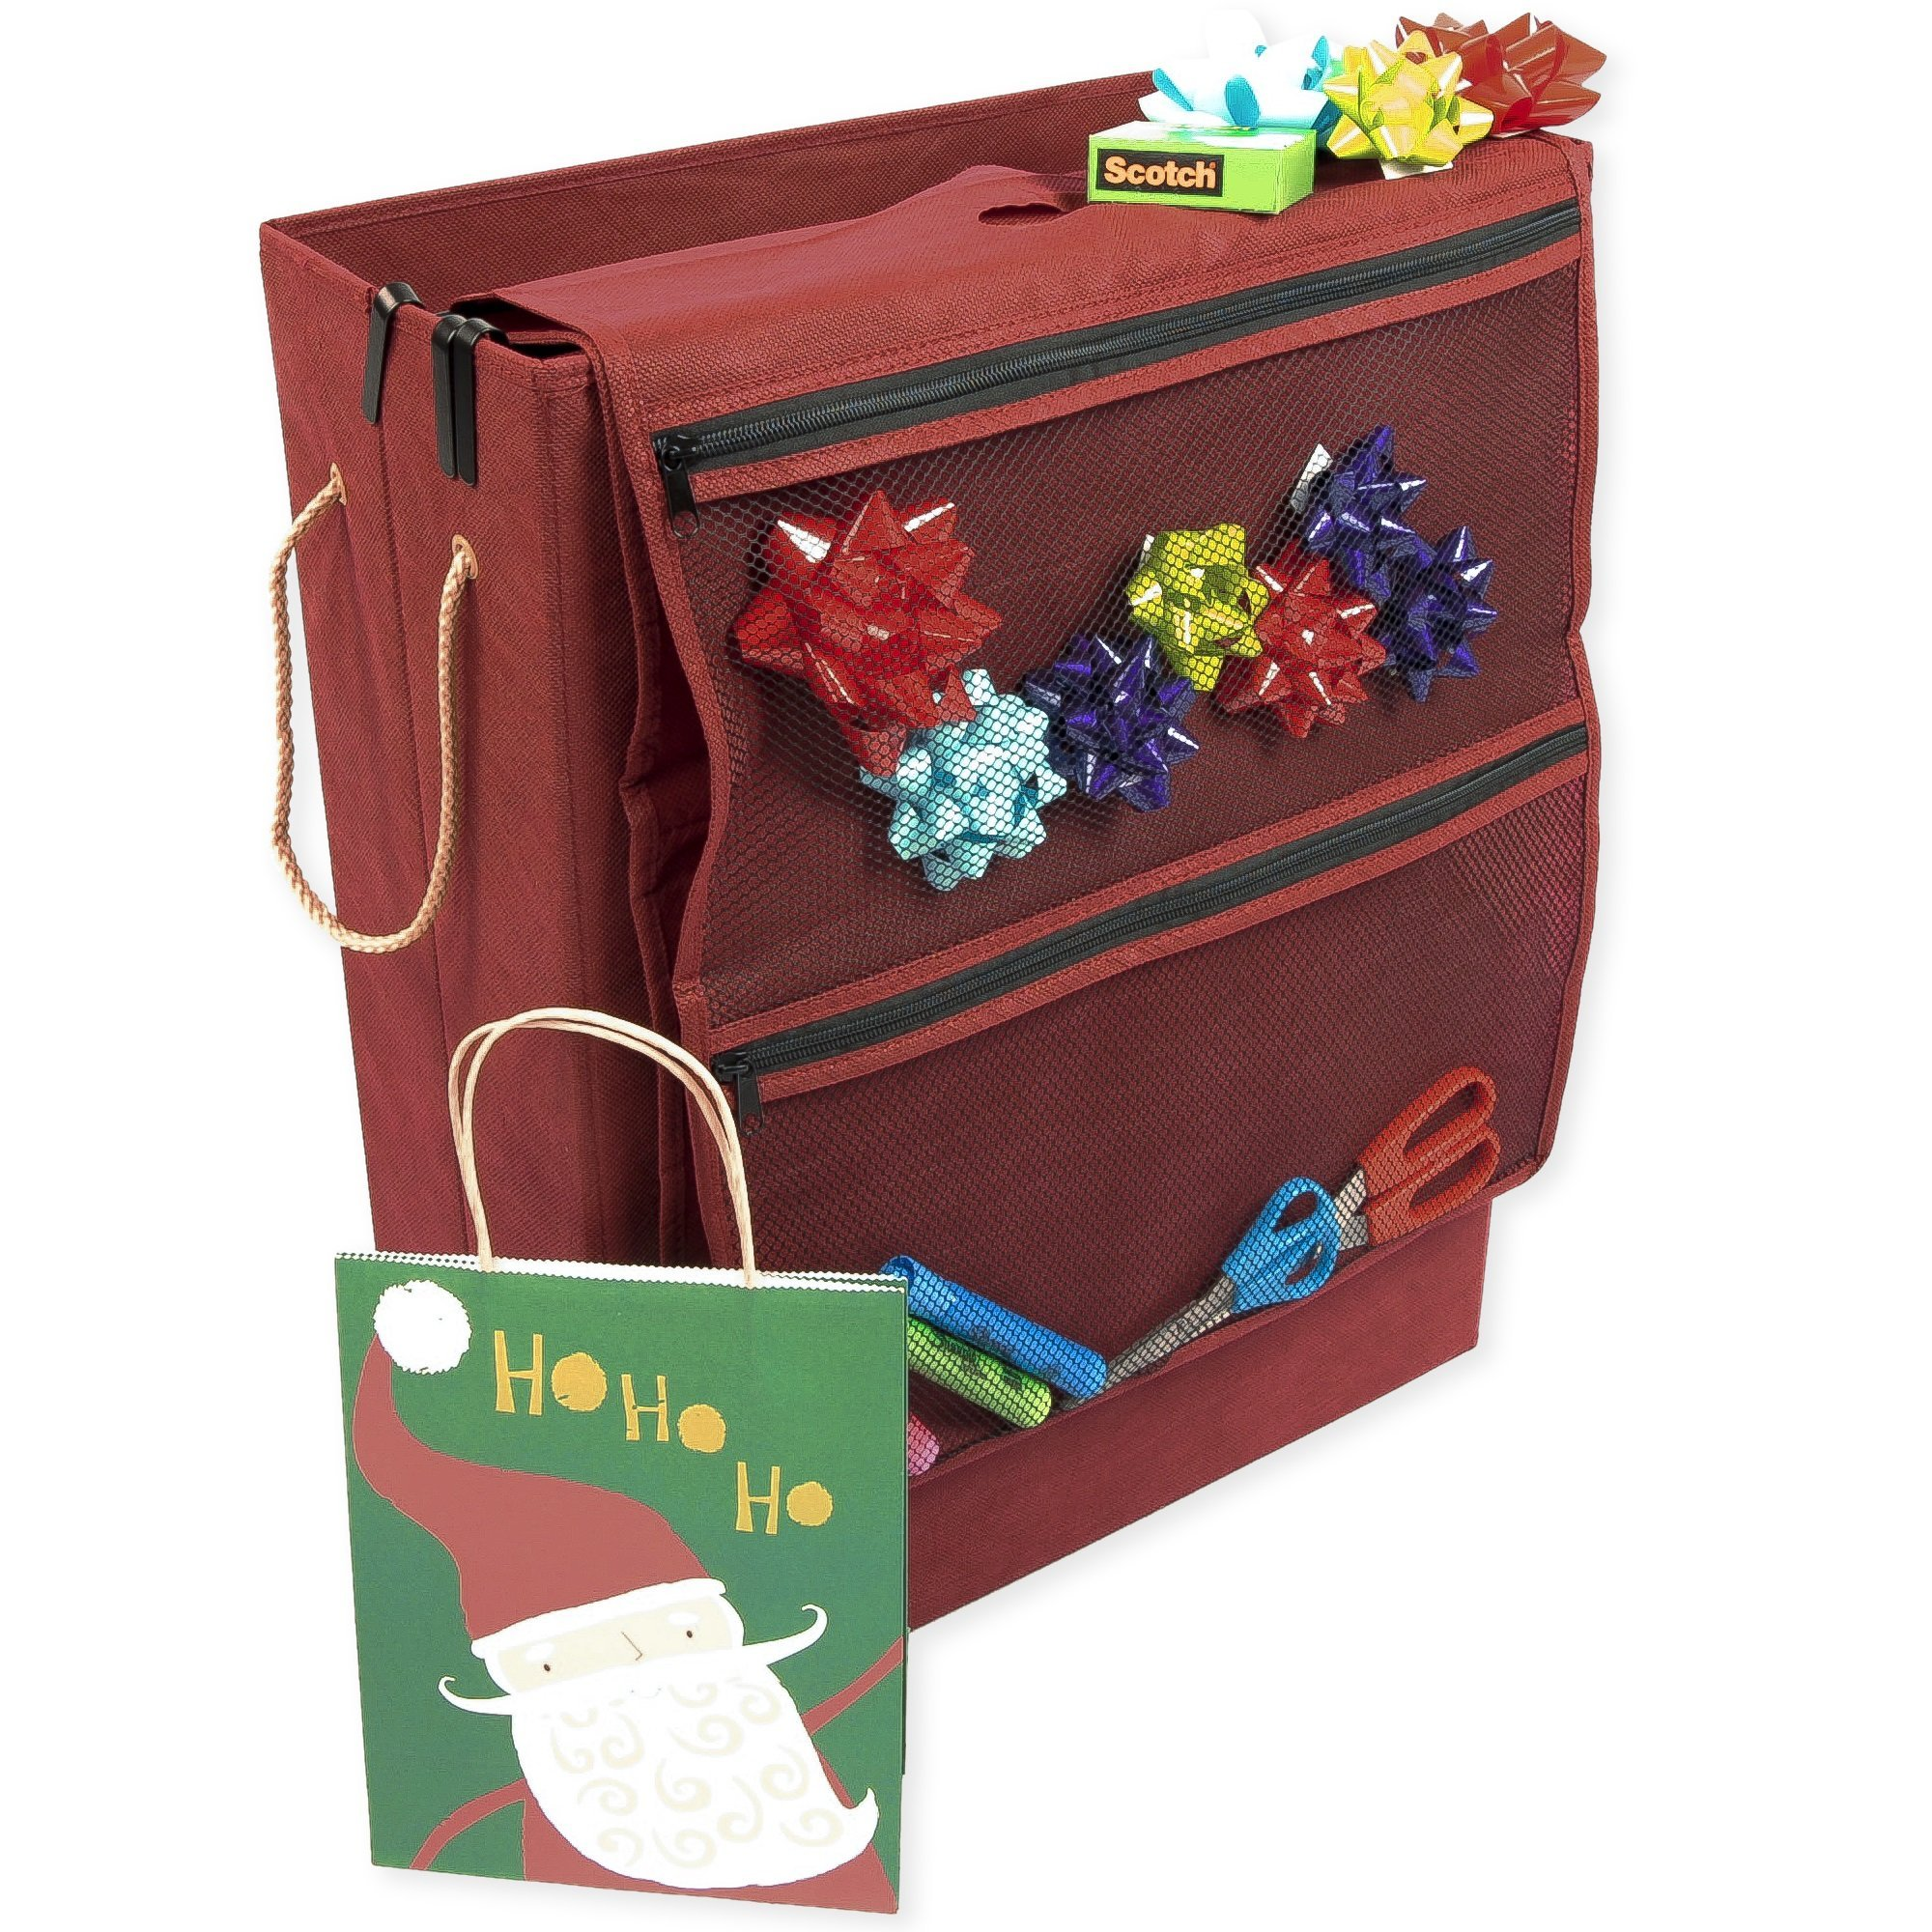 Santas Bags Decorated Gift Bag, Tissue, and Accessory Storage Box